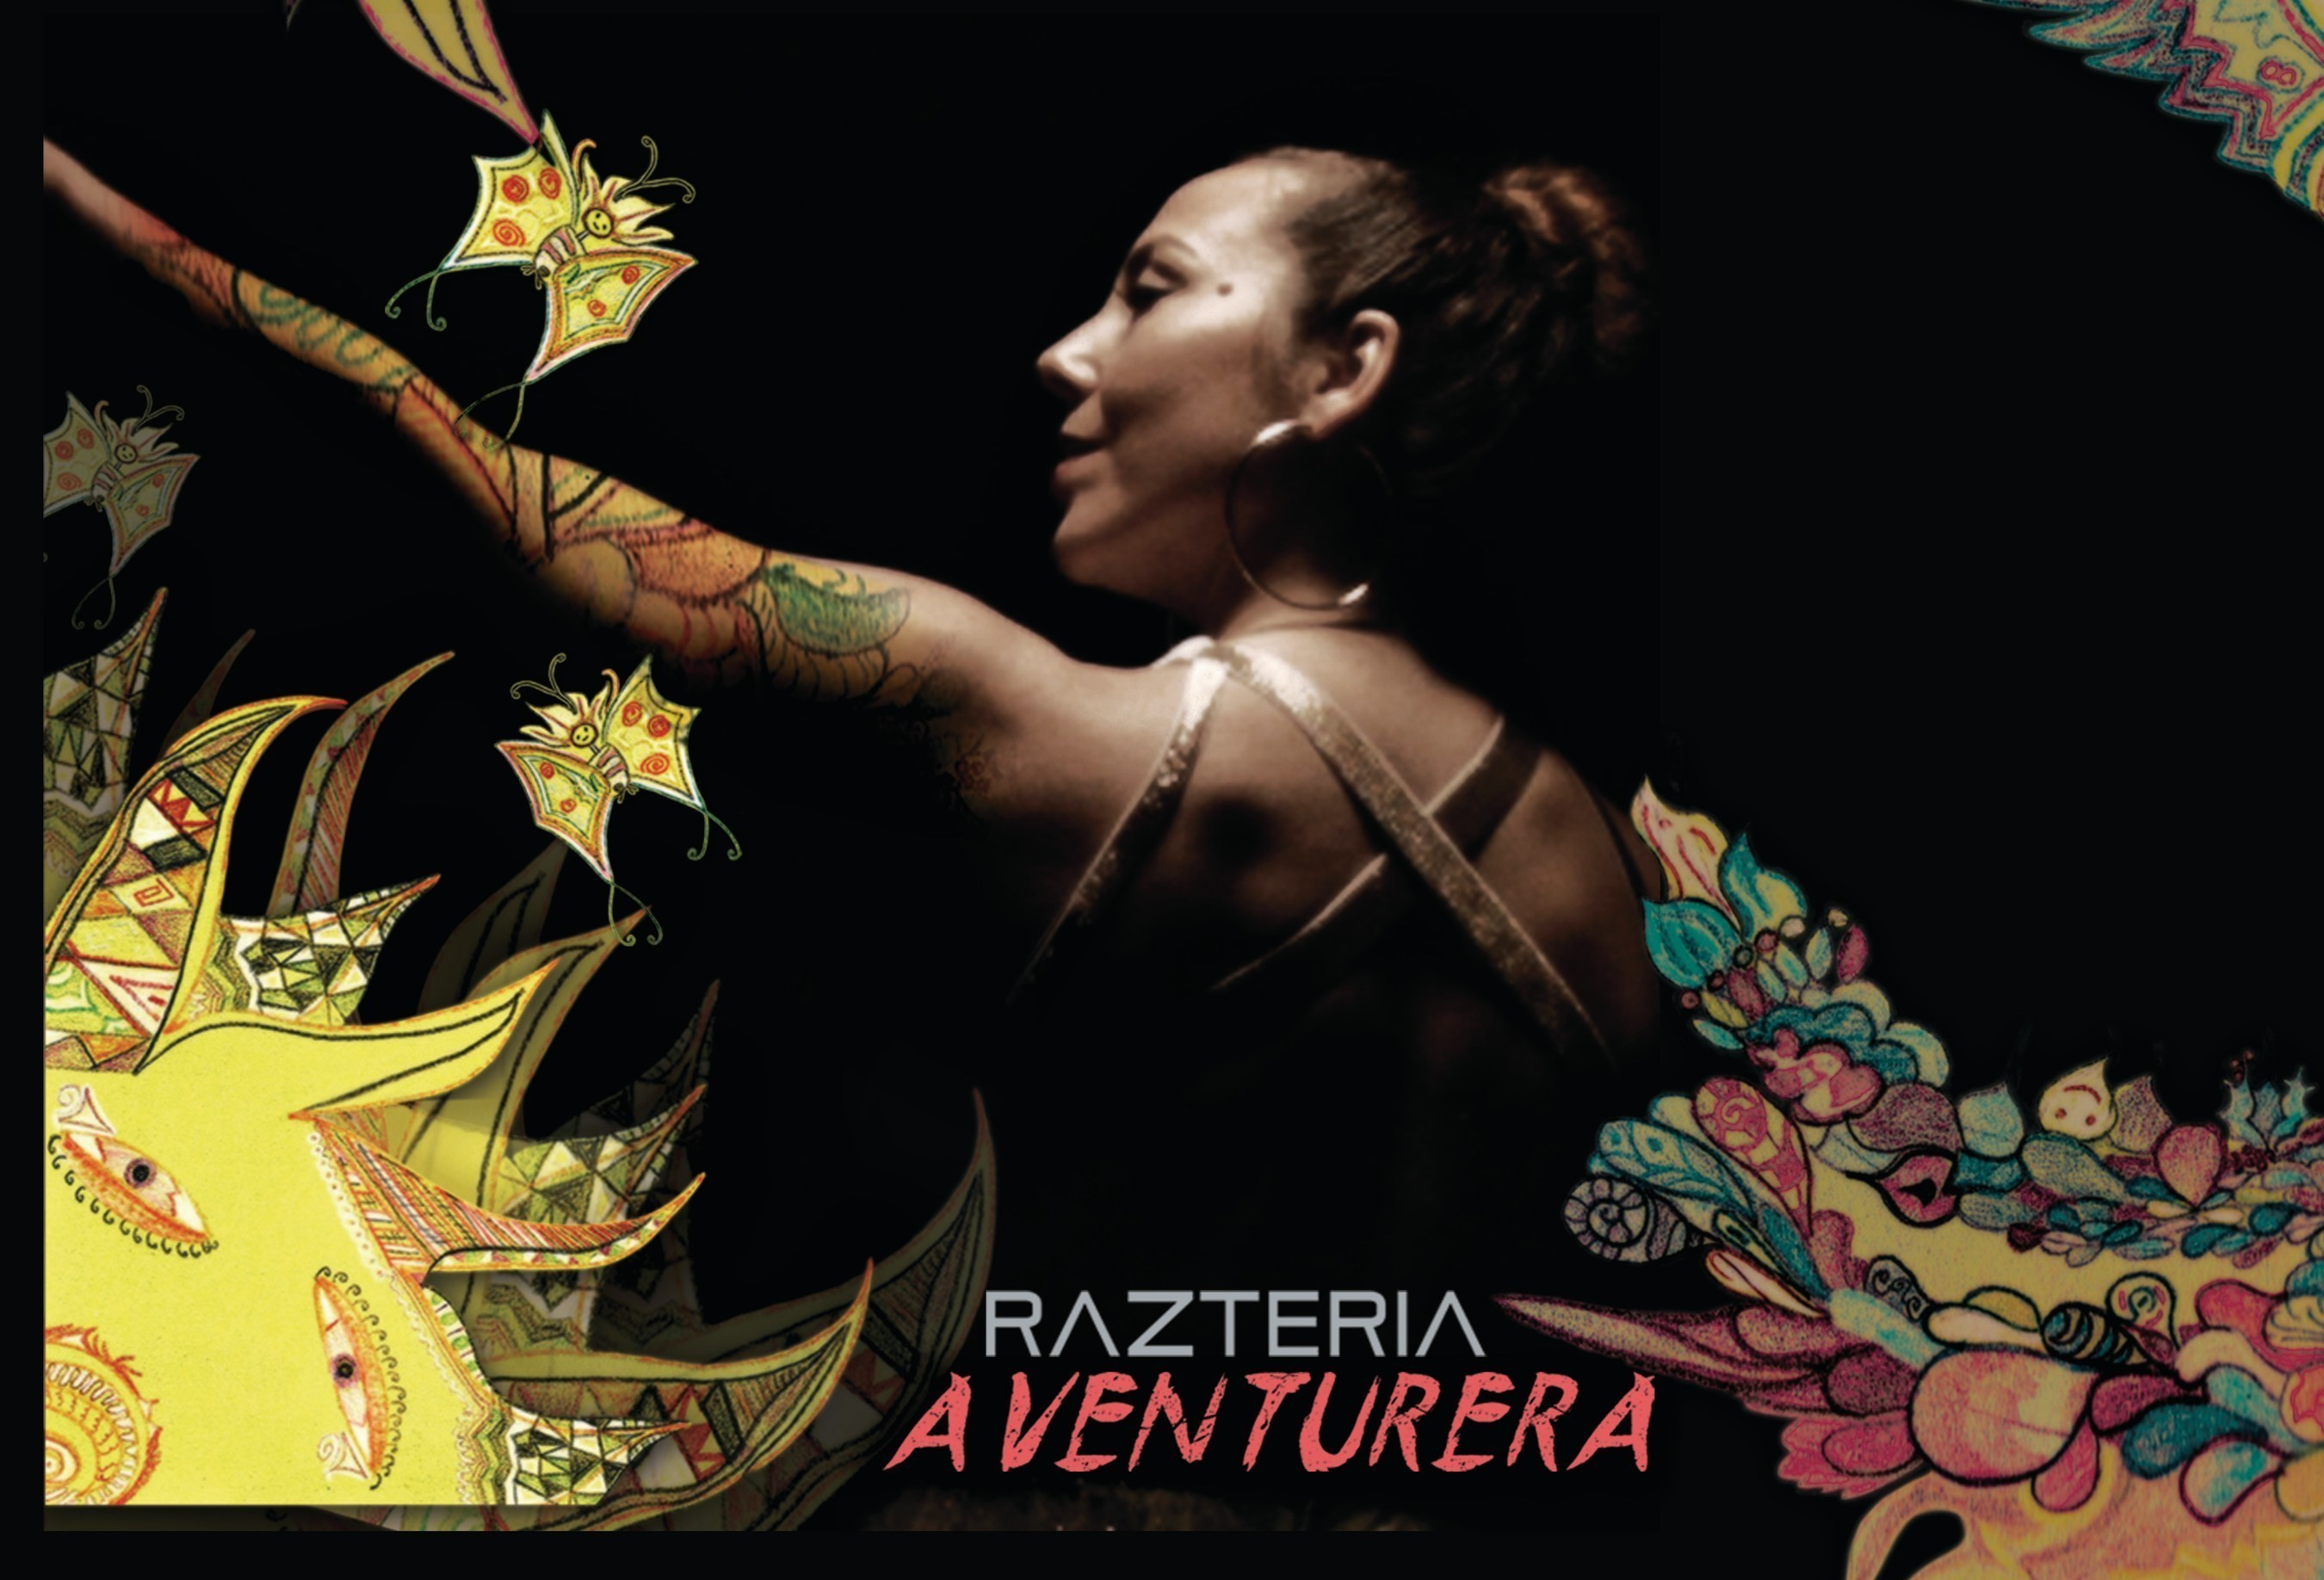 Bay Area Based Latin-Rock-Reggae Artist Razteria to Release Two Singles and Videos Ahead of the March 18th, 2016 Worldwide Release of her 5th Album, 'Aventurera'